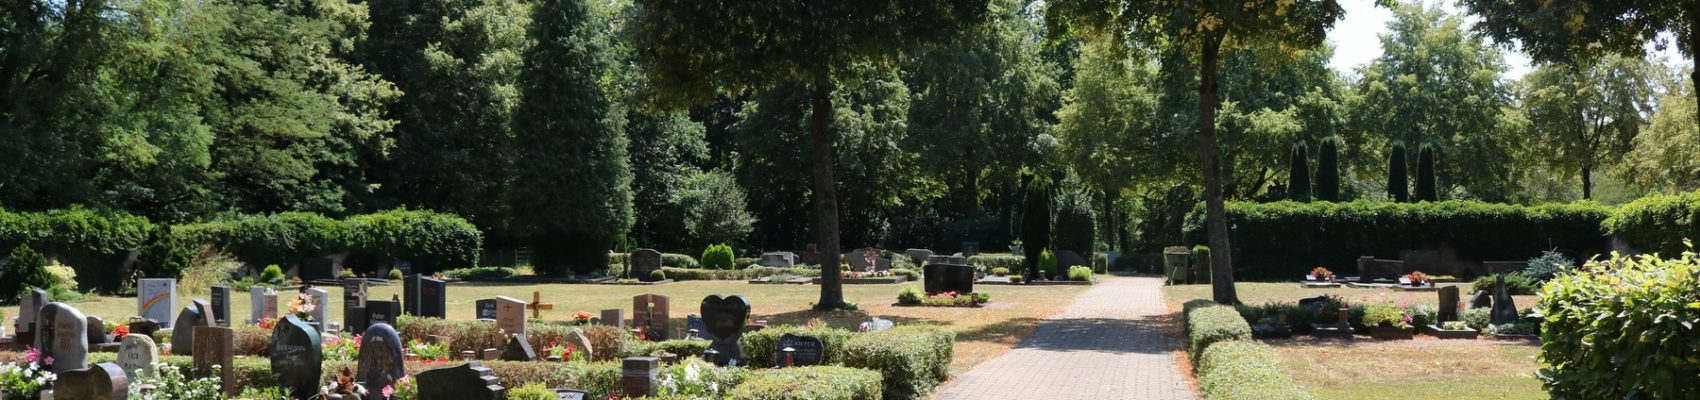 Friedhof in Schwemlingen